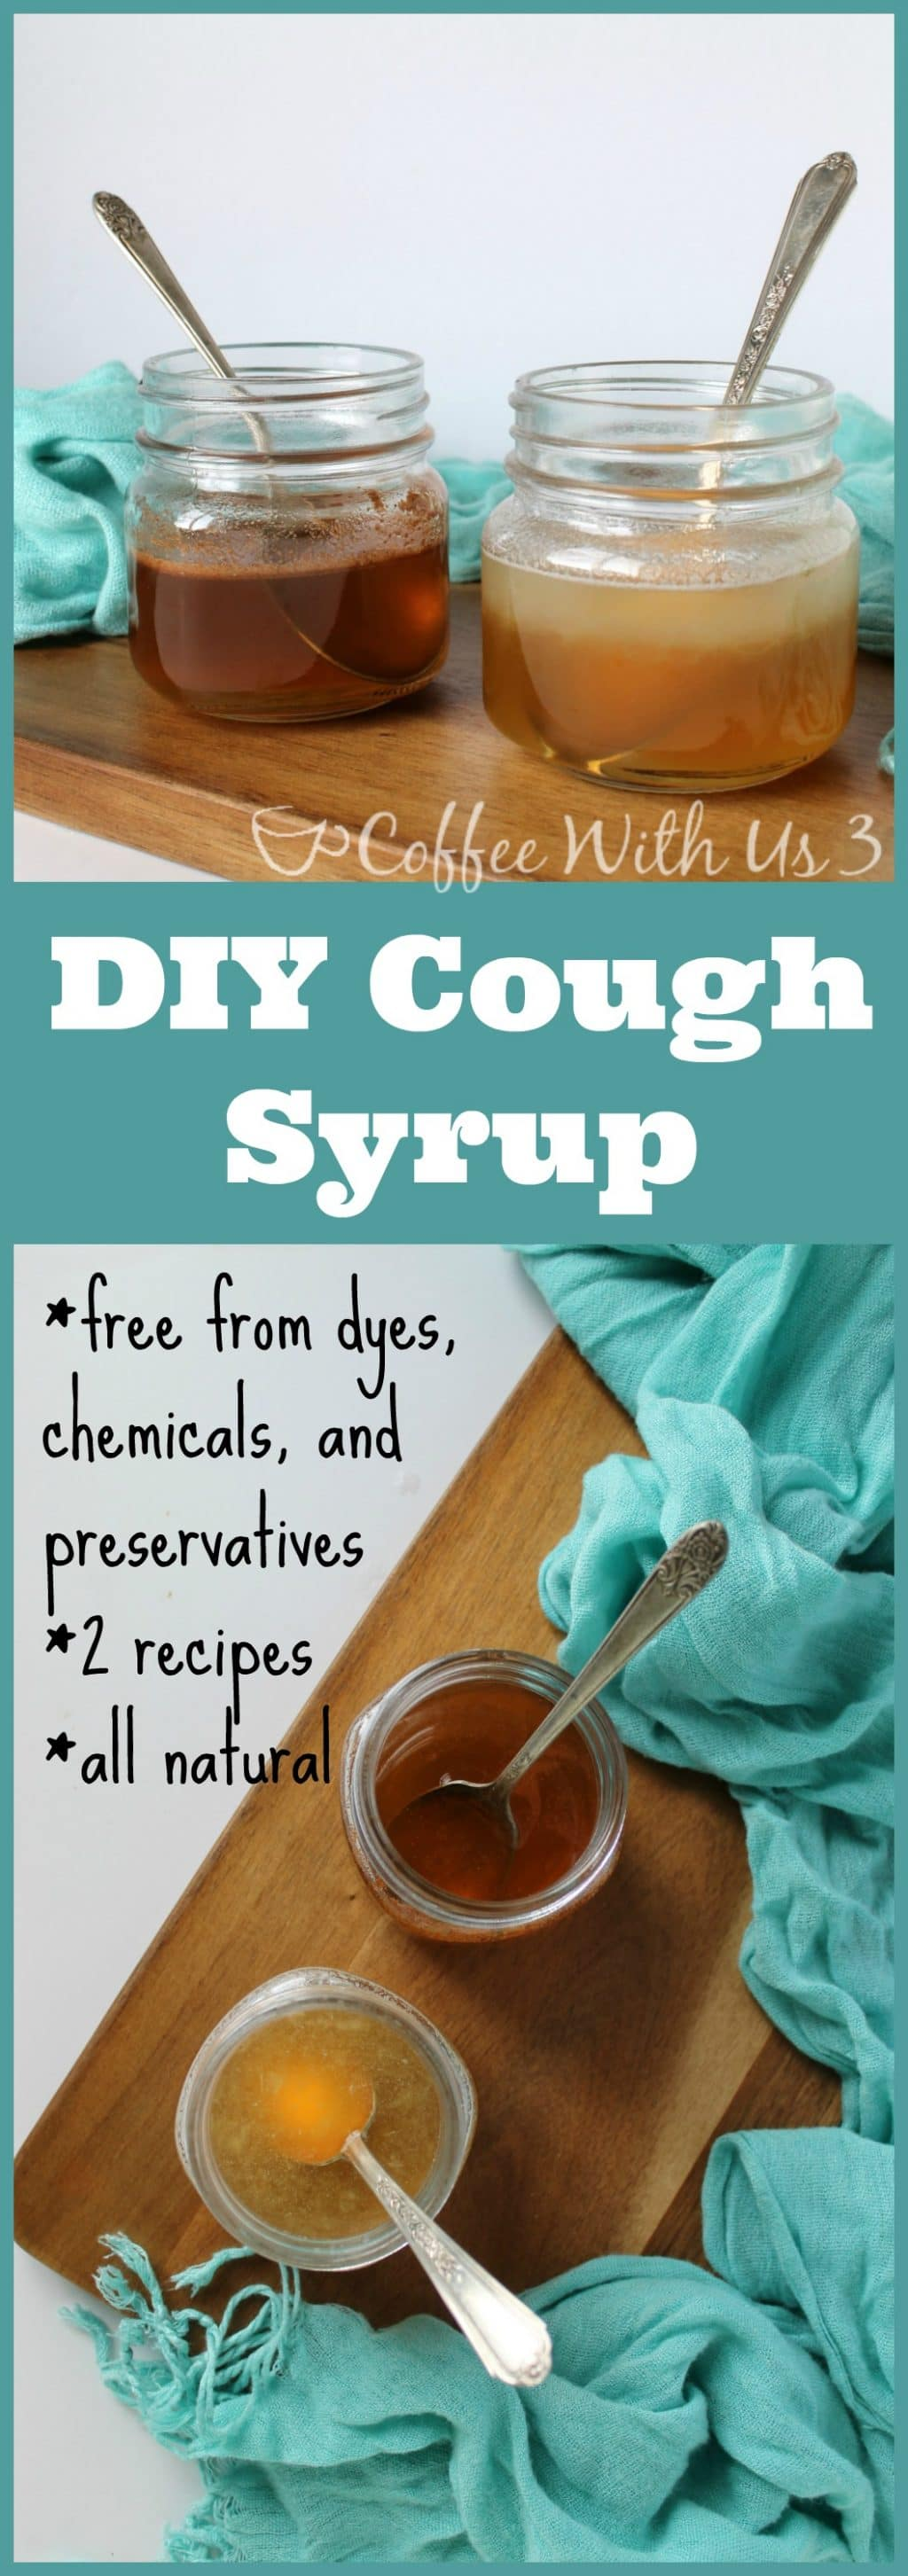 DIY Cough Syrup-- Did you know you can make your own cough syrup? How cool is that?!? No more dyes, synthetic ingredients, just simple, real ingredients!